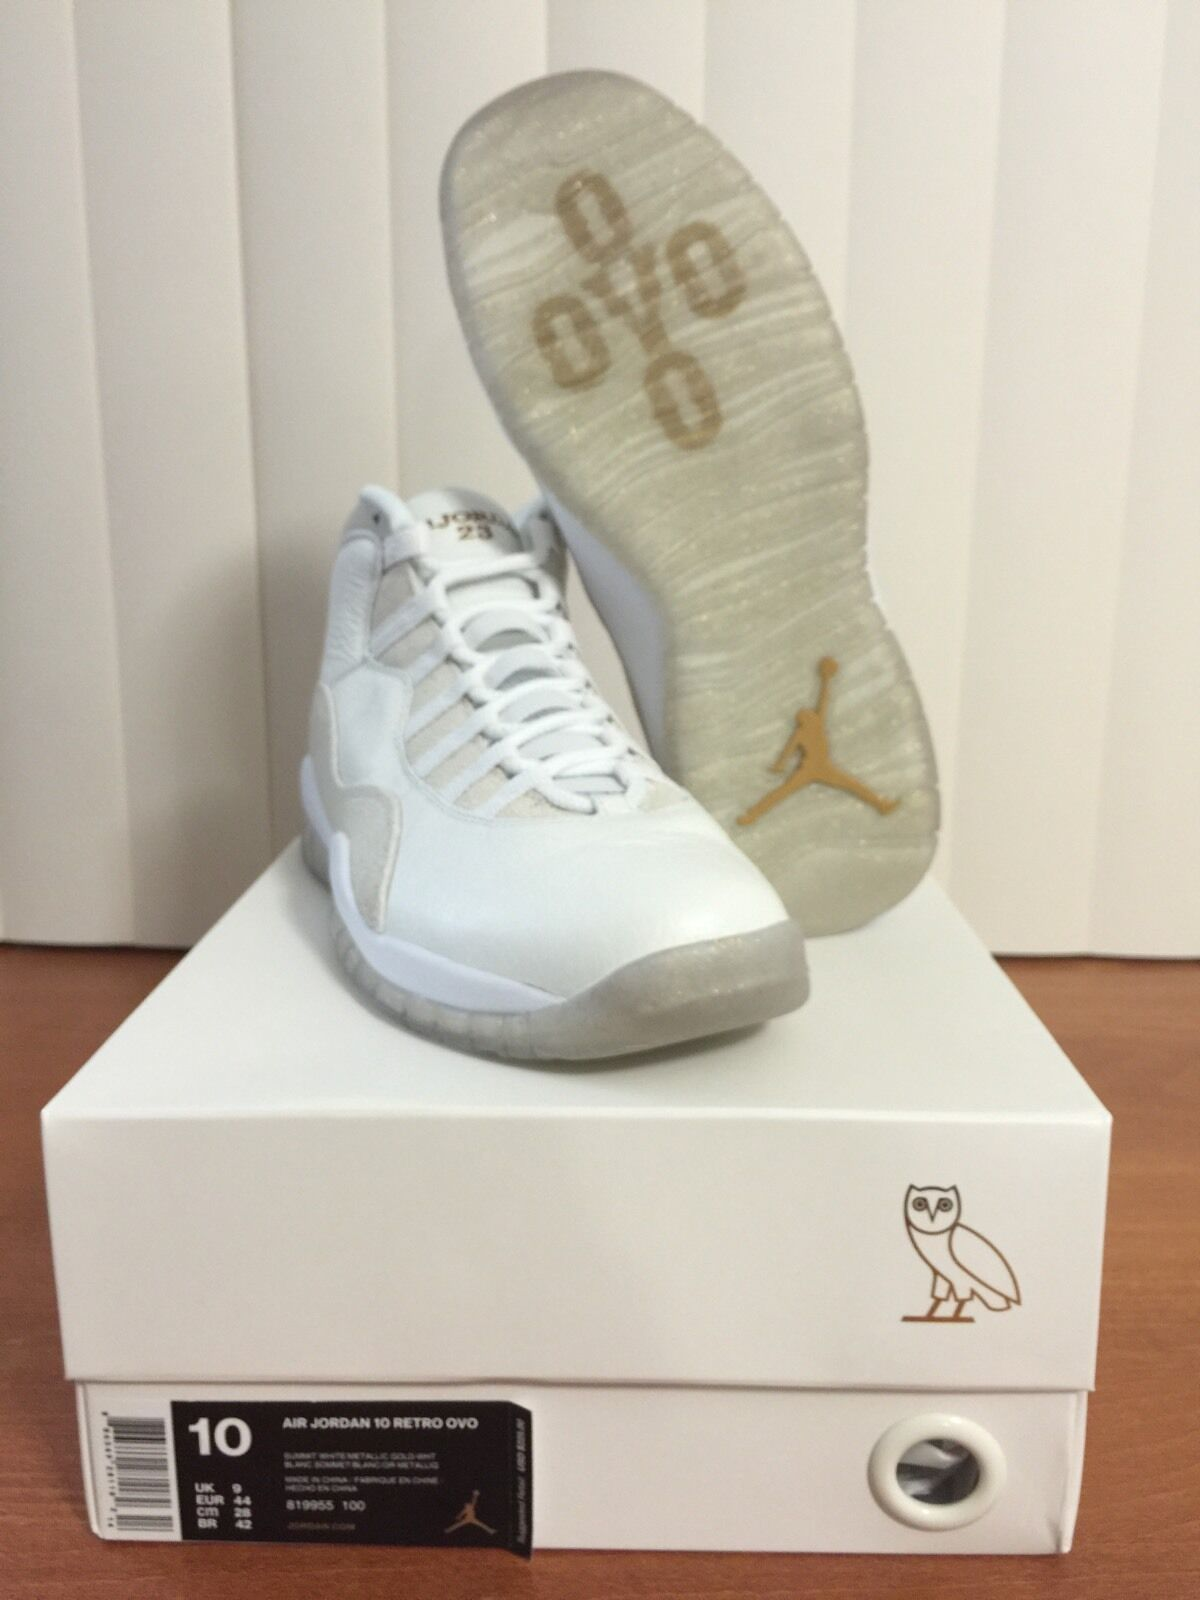 AIR JORDAN 10 RETRO OVO SIZE 10 LIMITED EDITION 1ST RELEASE